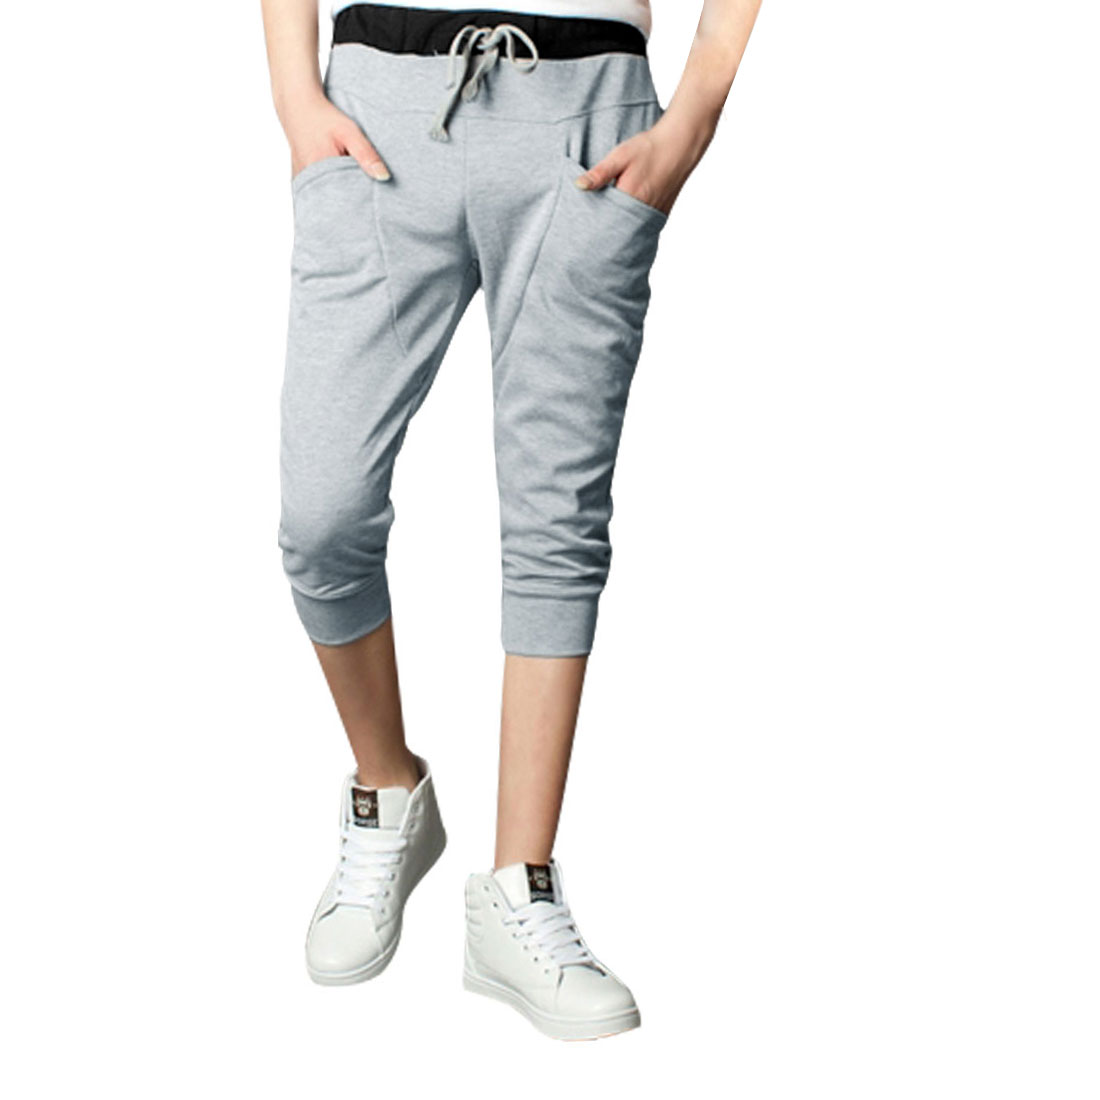 Men Drawstring Elastic Waist Pockets Front Capris Pants Light Gray W27